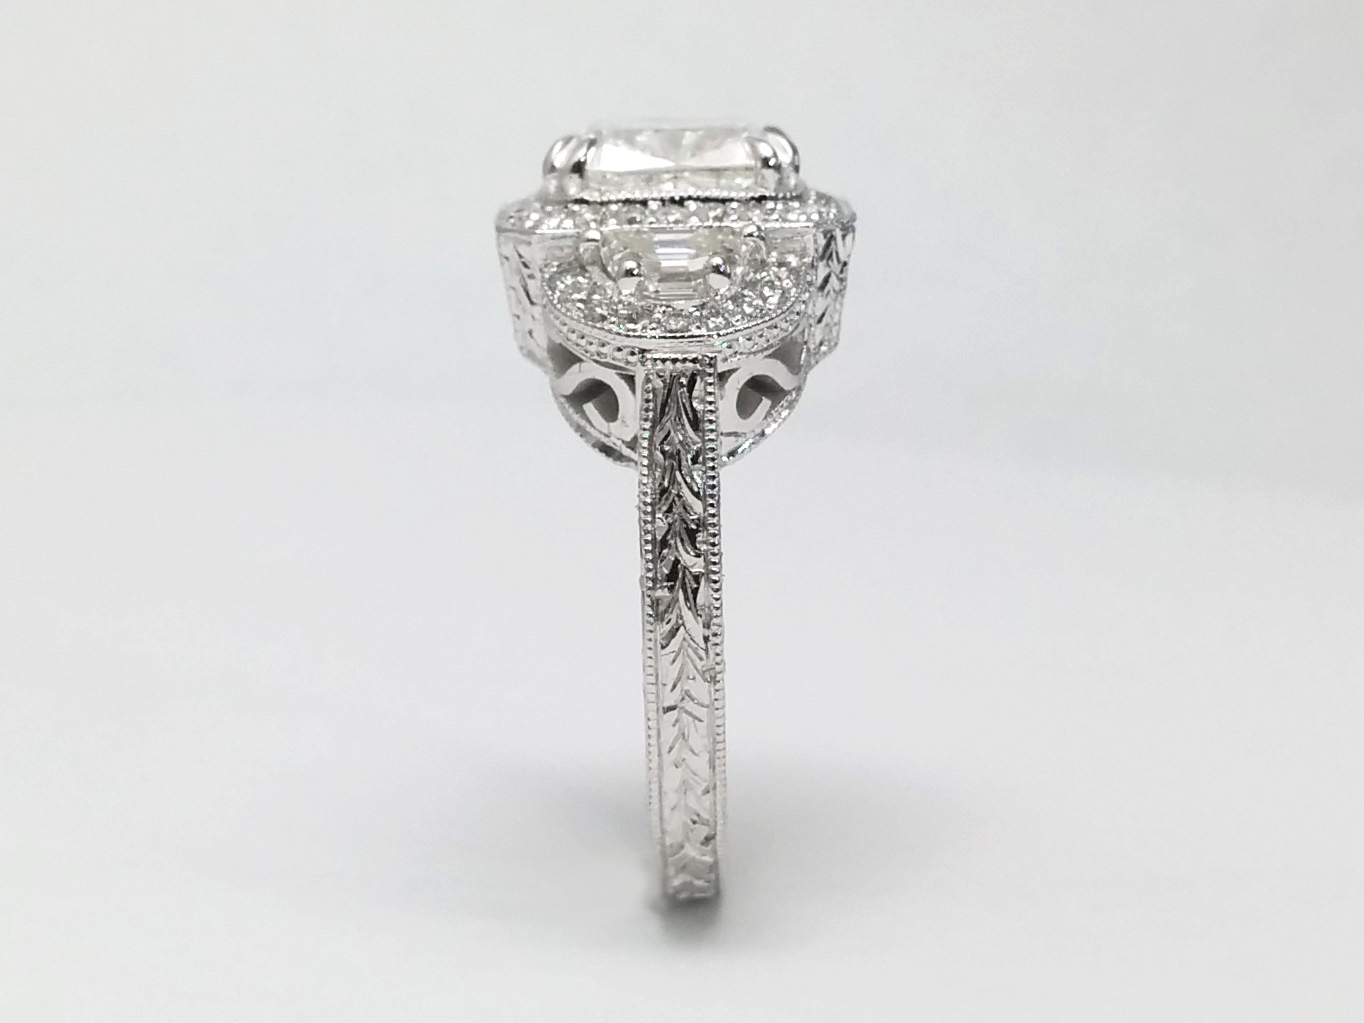 Cushion Diamond Vintage Engagement Ring with Half Moon Diamonds in 14K White Gold